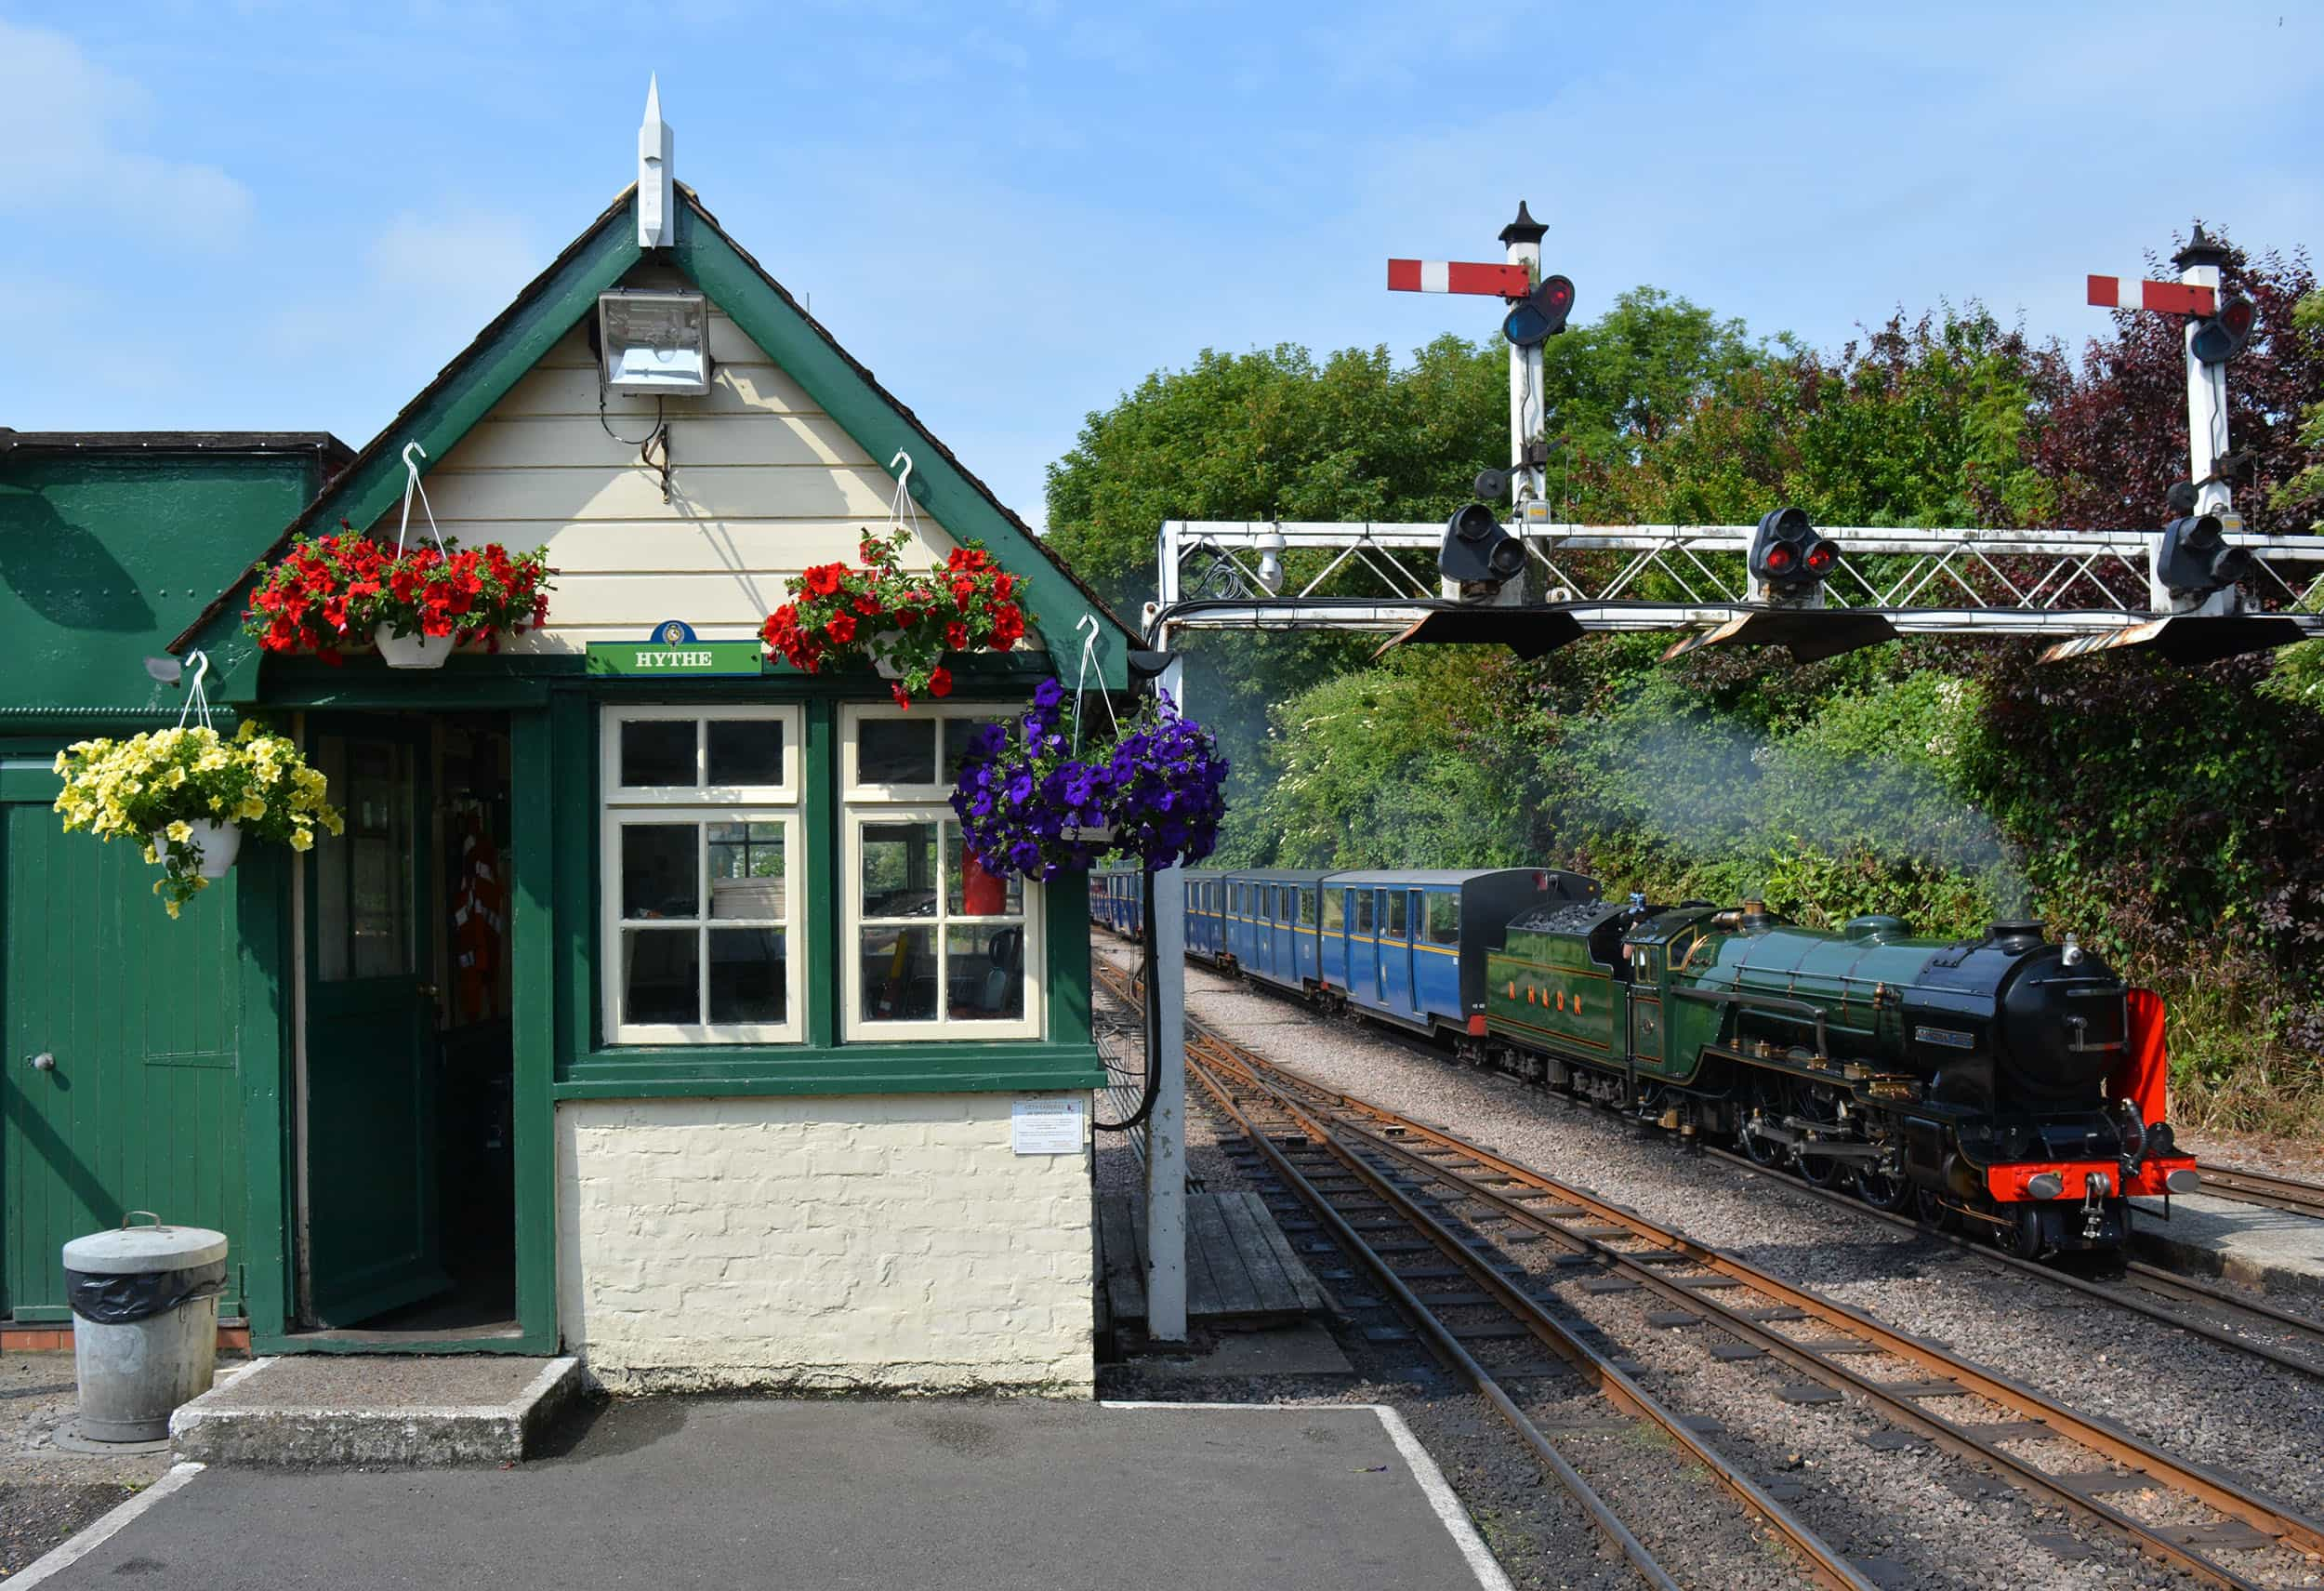 Hythe Station at Romney, Hythe & Dymchurch Railway